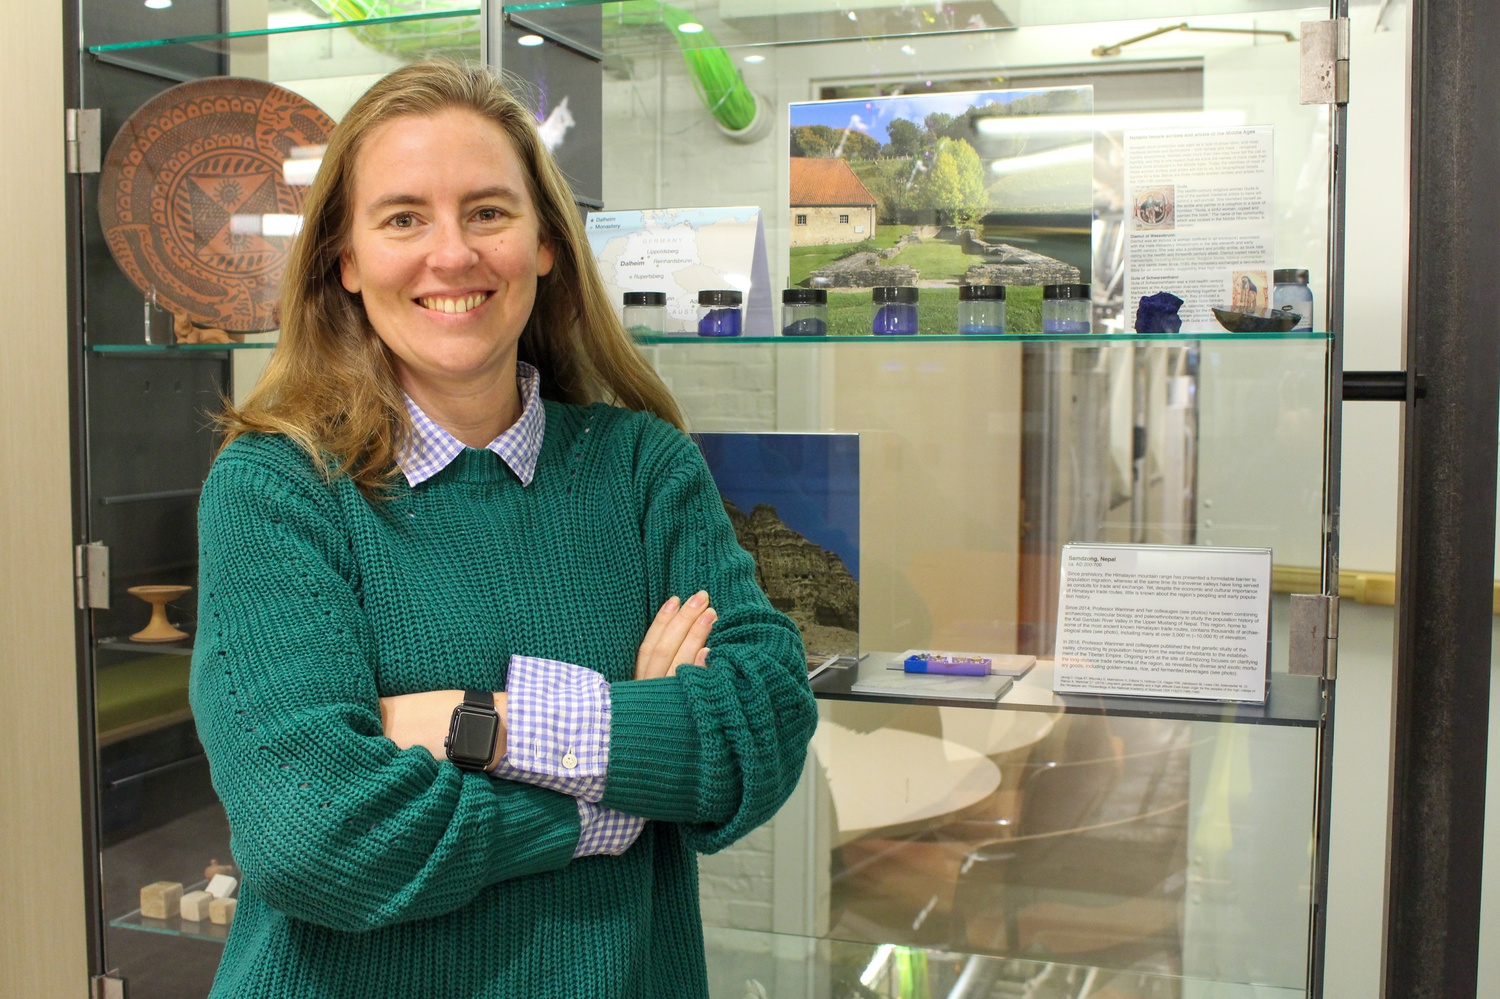 Christina Warriner, an assistant professor of anthropology at Harvard College, researches in biomolecular archaeology with an emphasis on the evolution of the microbiome.